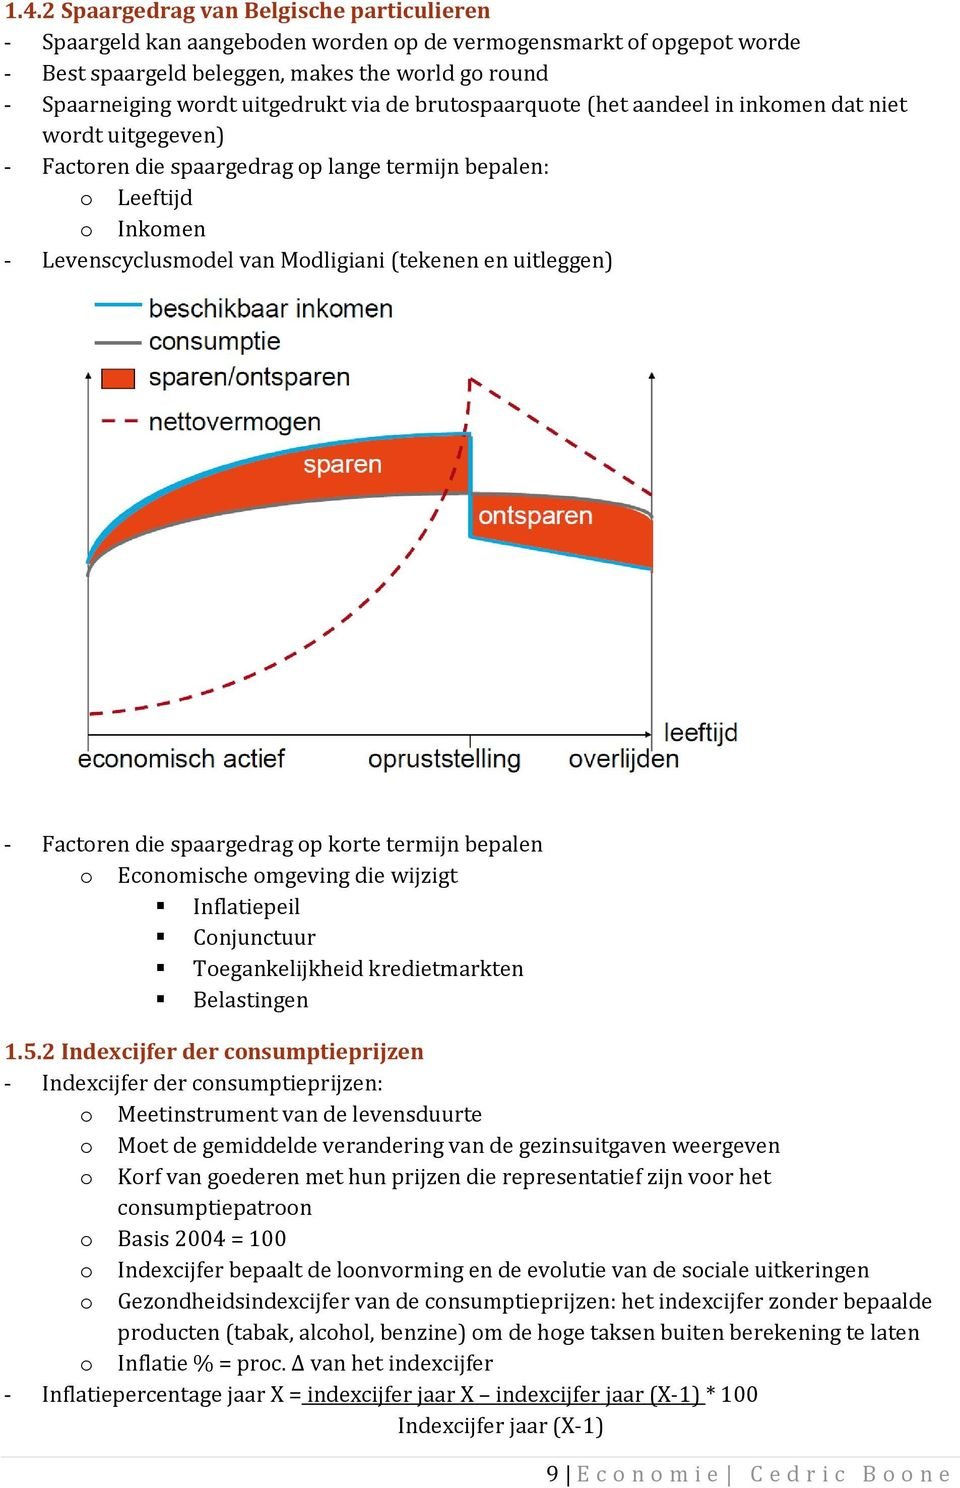 Index consumptieprijzen basis 2004